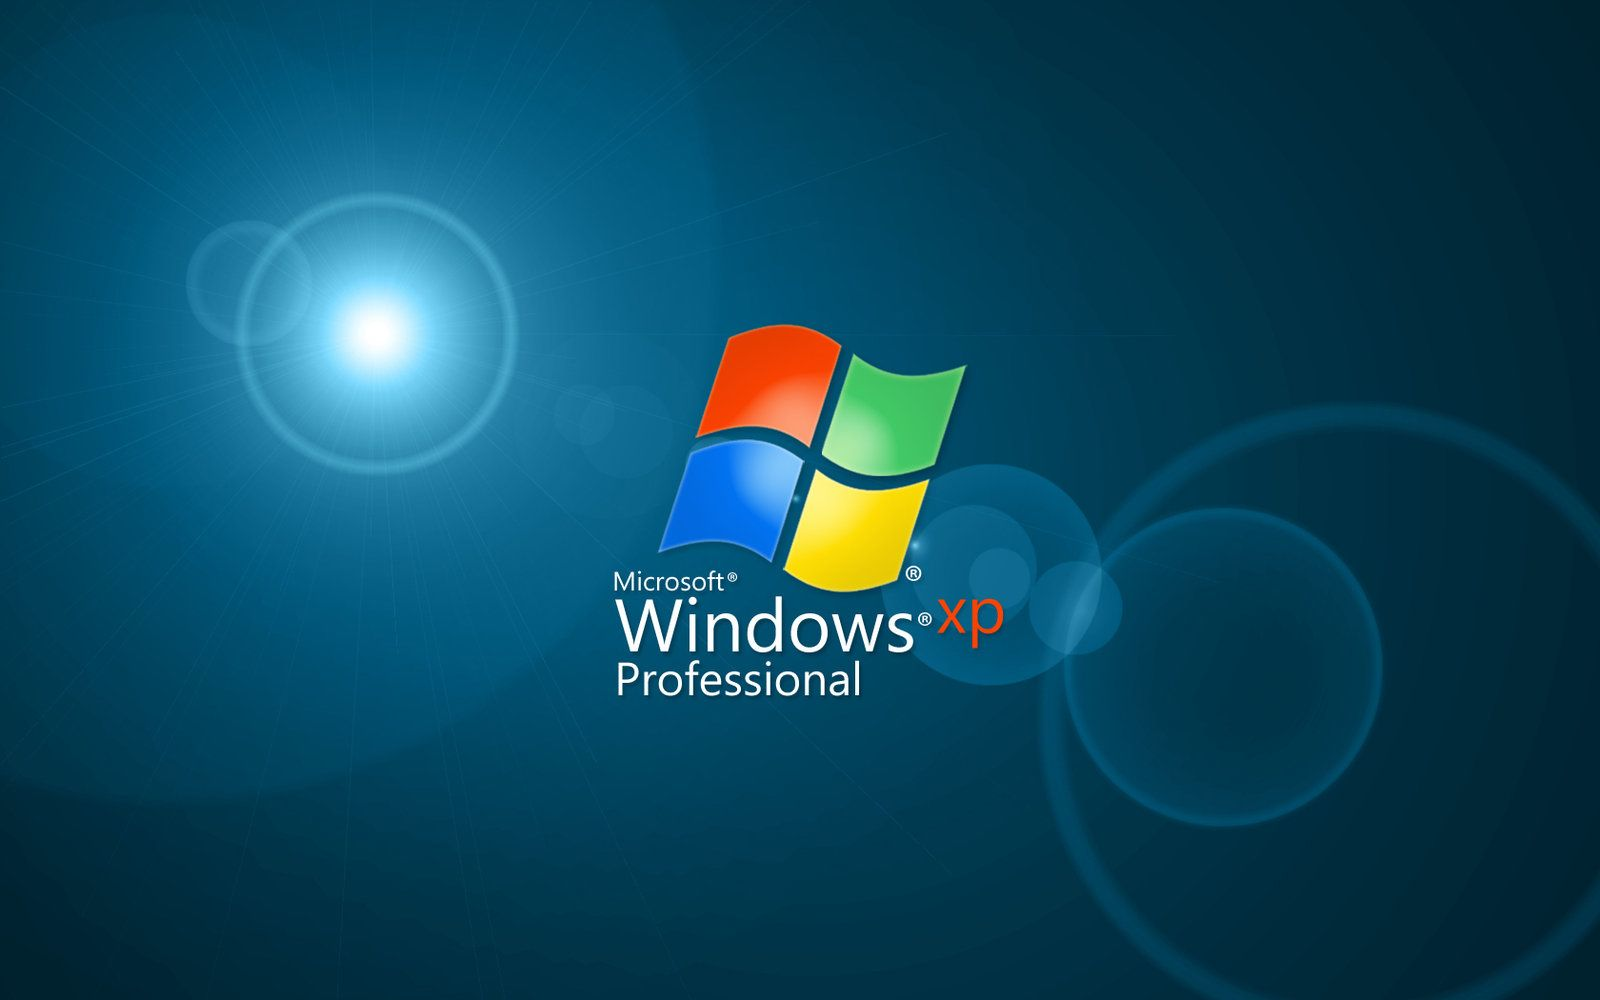 Are You Looking For Windows Xp Professional Hd Wallpapers Download